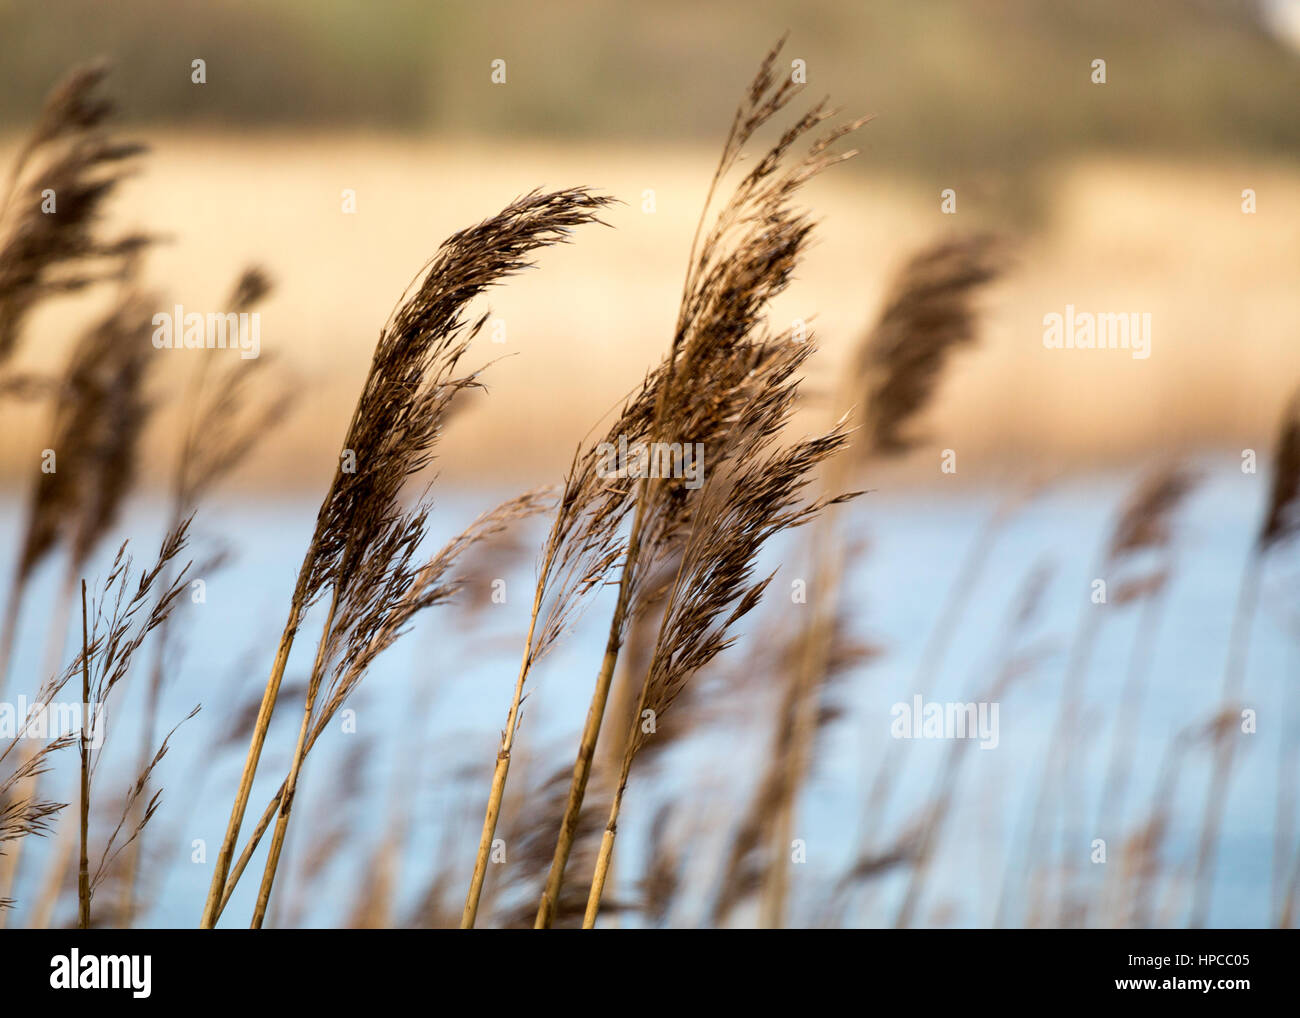 Windswept Reeds at Loch Lannagh, Castlebar,  Co Mayo in the West of Ireland - Stock Image